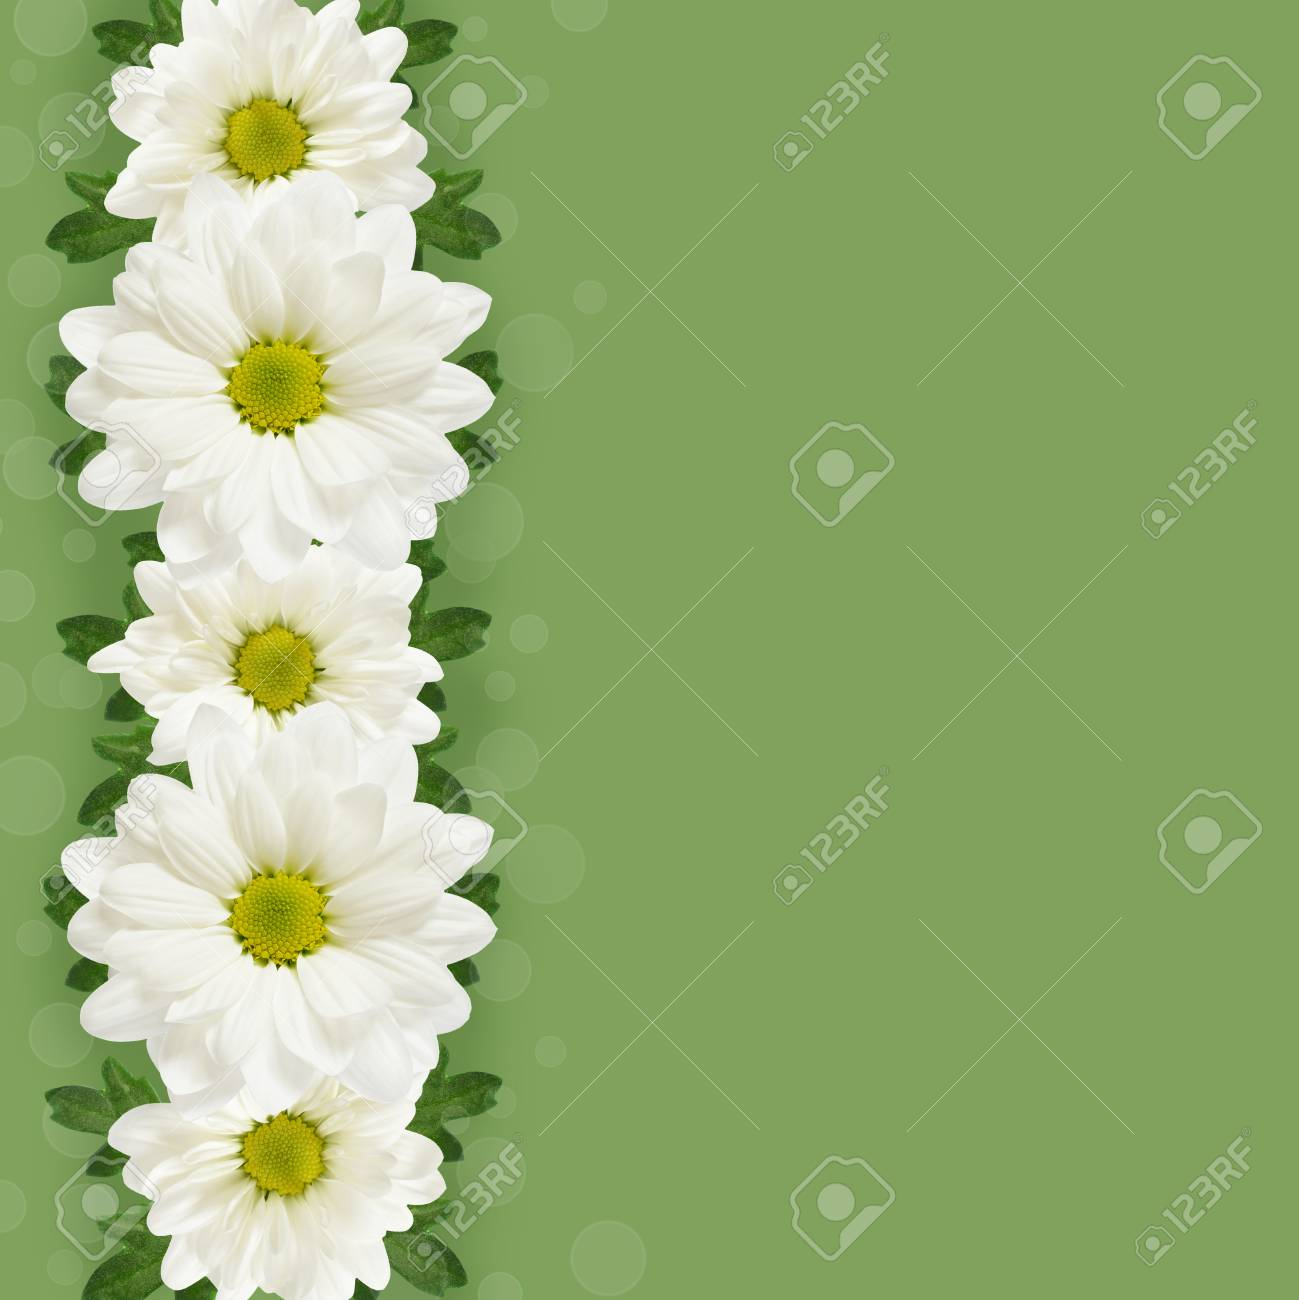 Daisy flowers line on green background stock photo picture and daisy flowers line on green background stock photo 26724484 izmirmasajfo